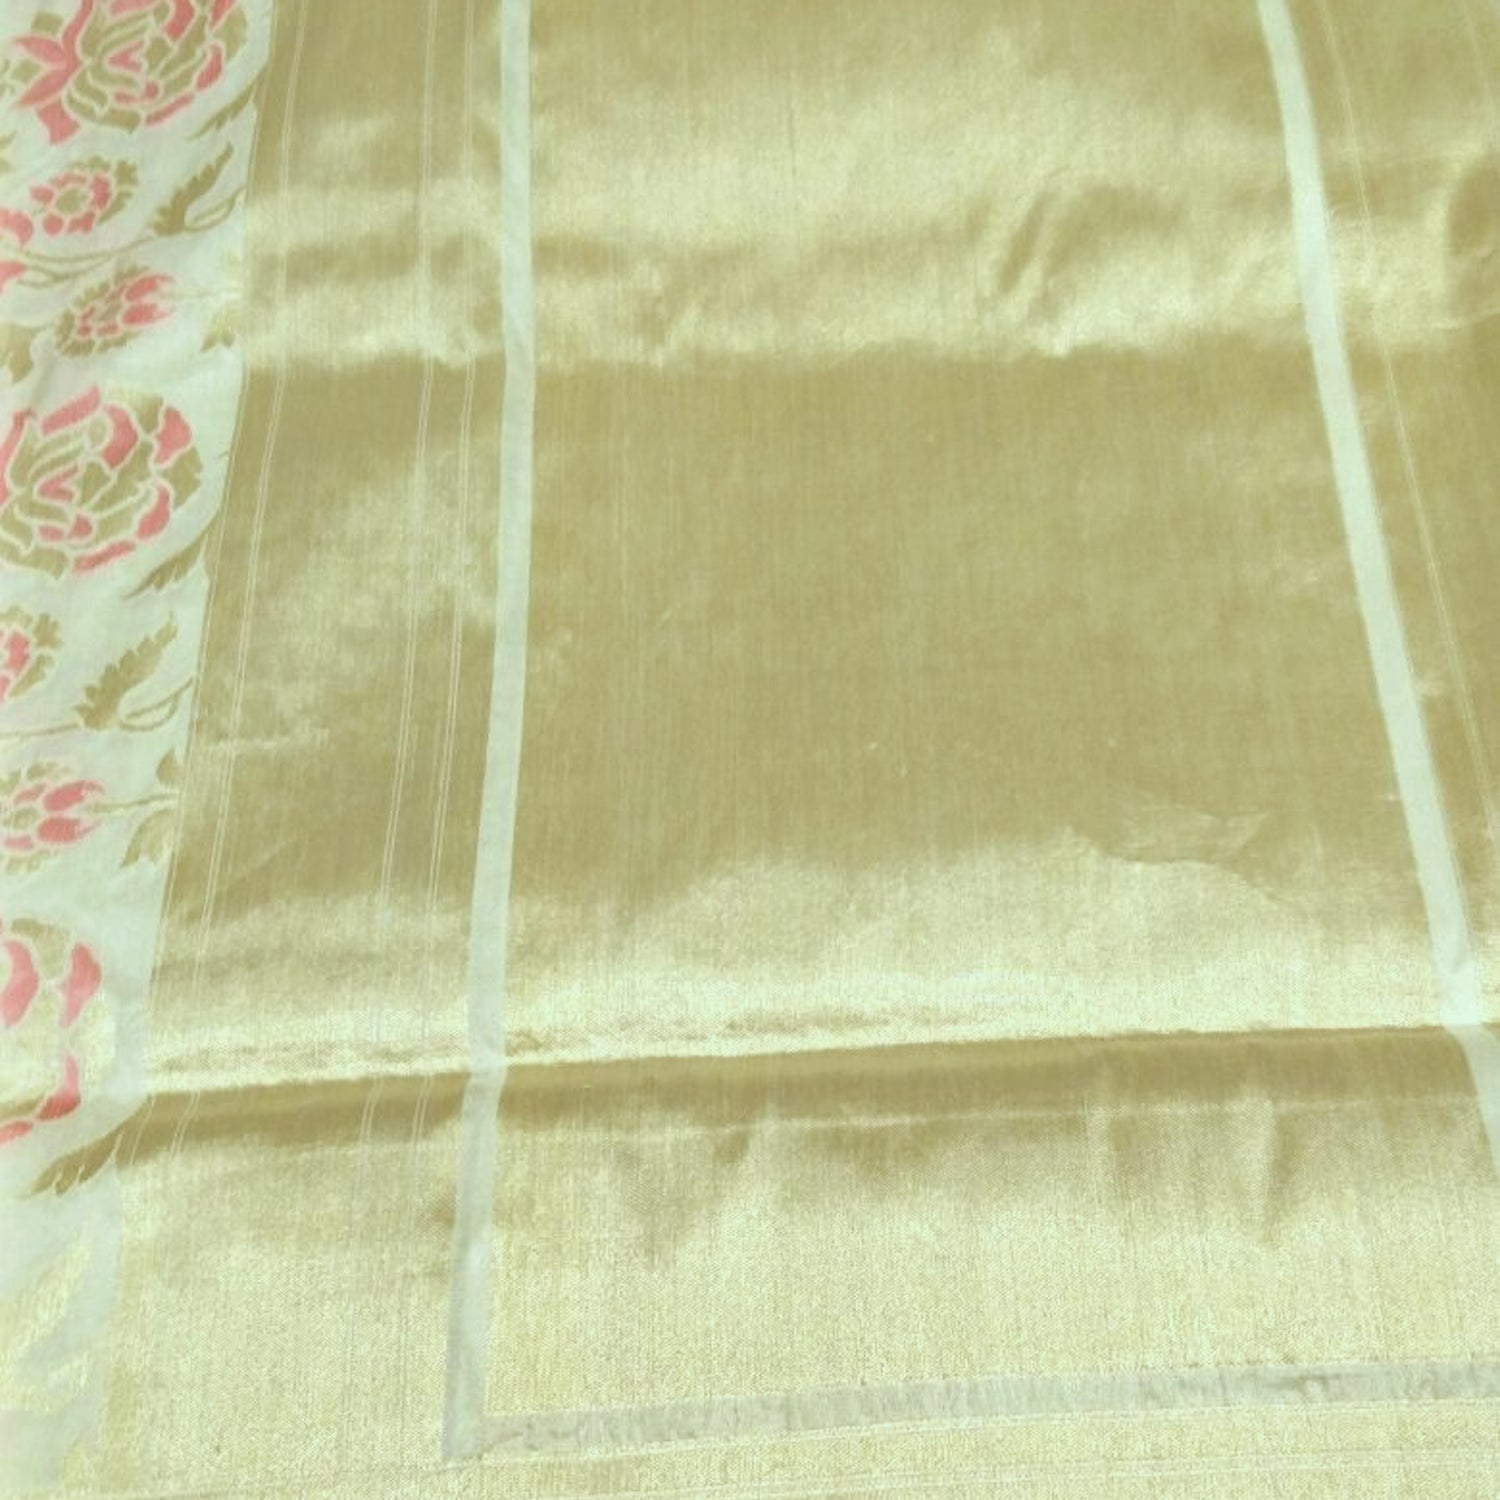 Off-white Pure Katan Silk Banarasi Handloom Saree - Tilfi - 2